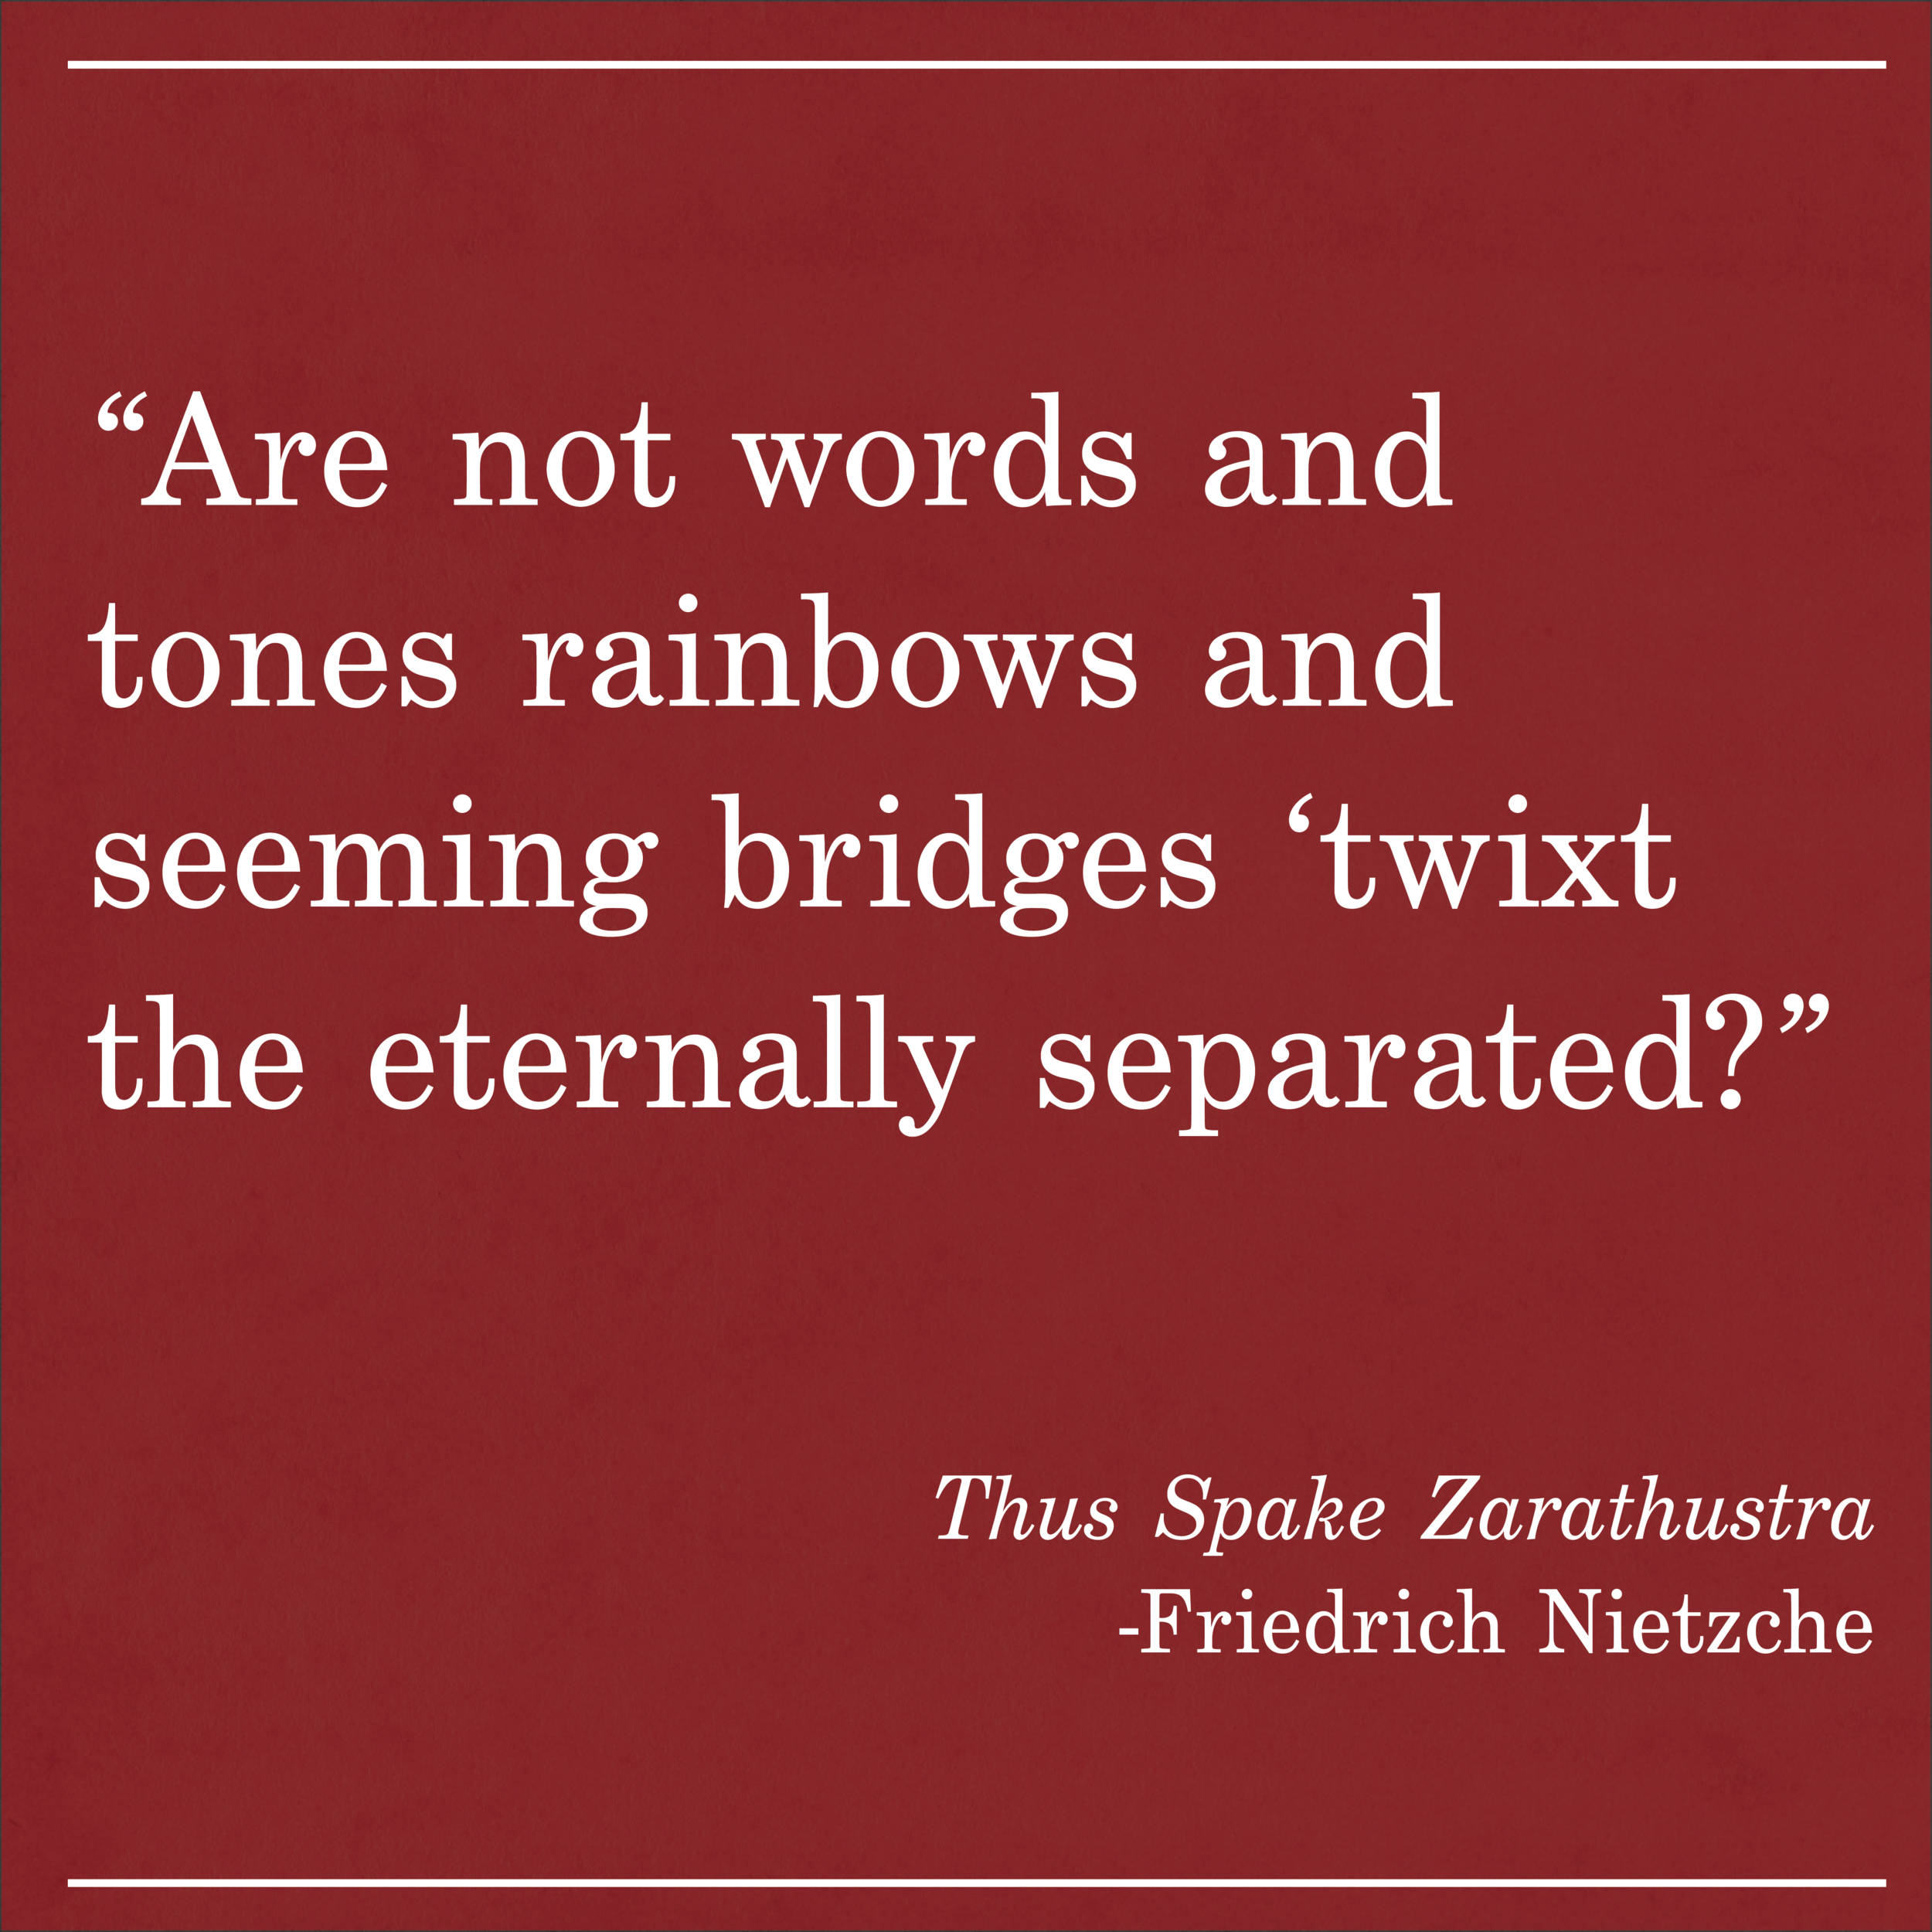 Daily Quote Thus Spake Zarathustra by Nietzche